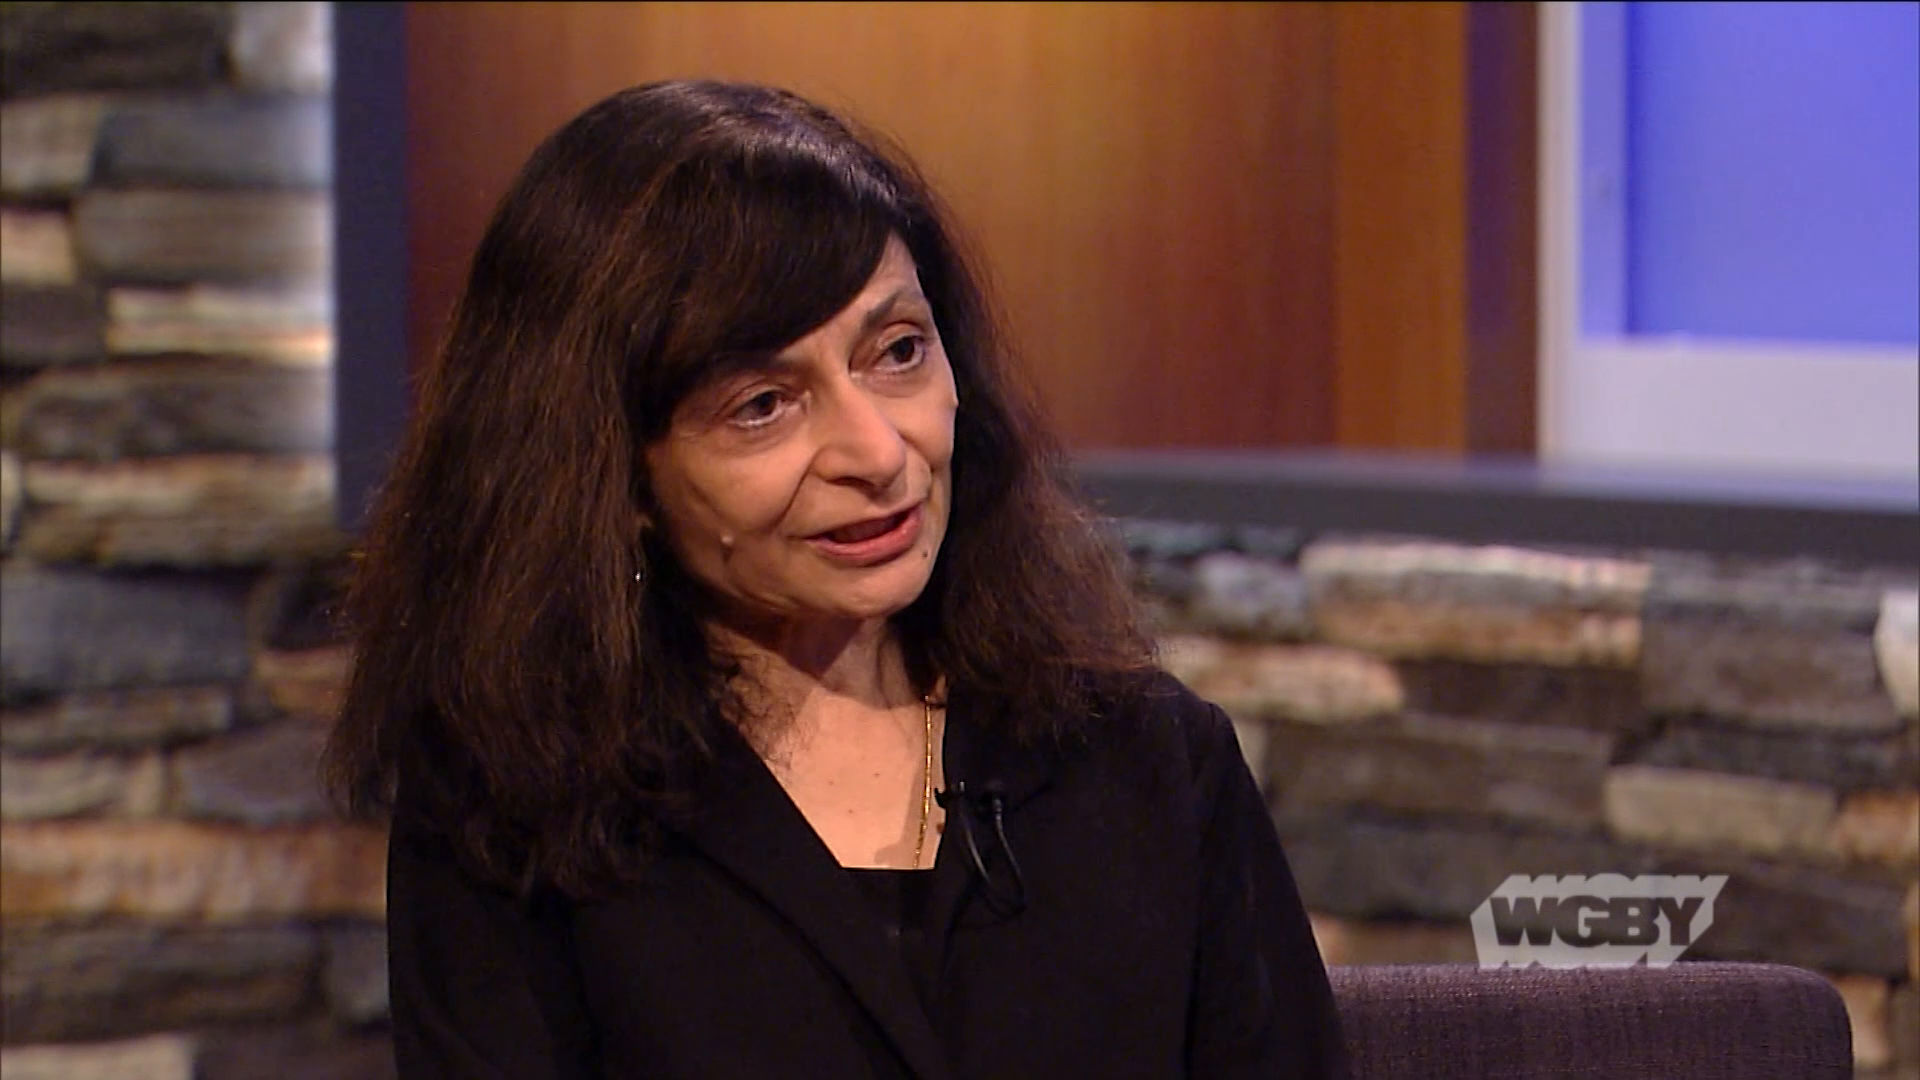 Mount Holyoke College Professor & McCulloch Center for Global Initiatives Director Kavita Khory discusses her focus on political violence in South Asia.